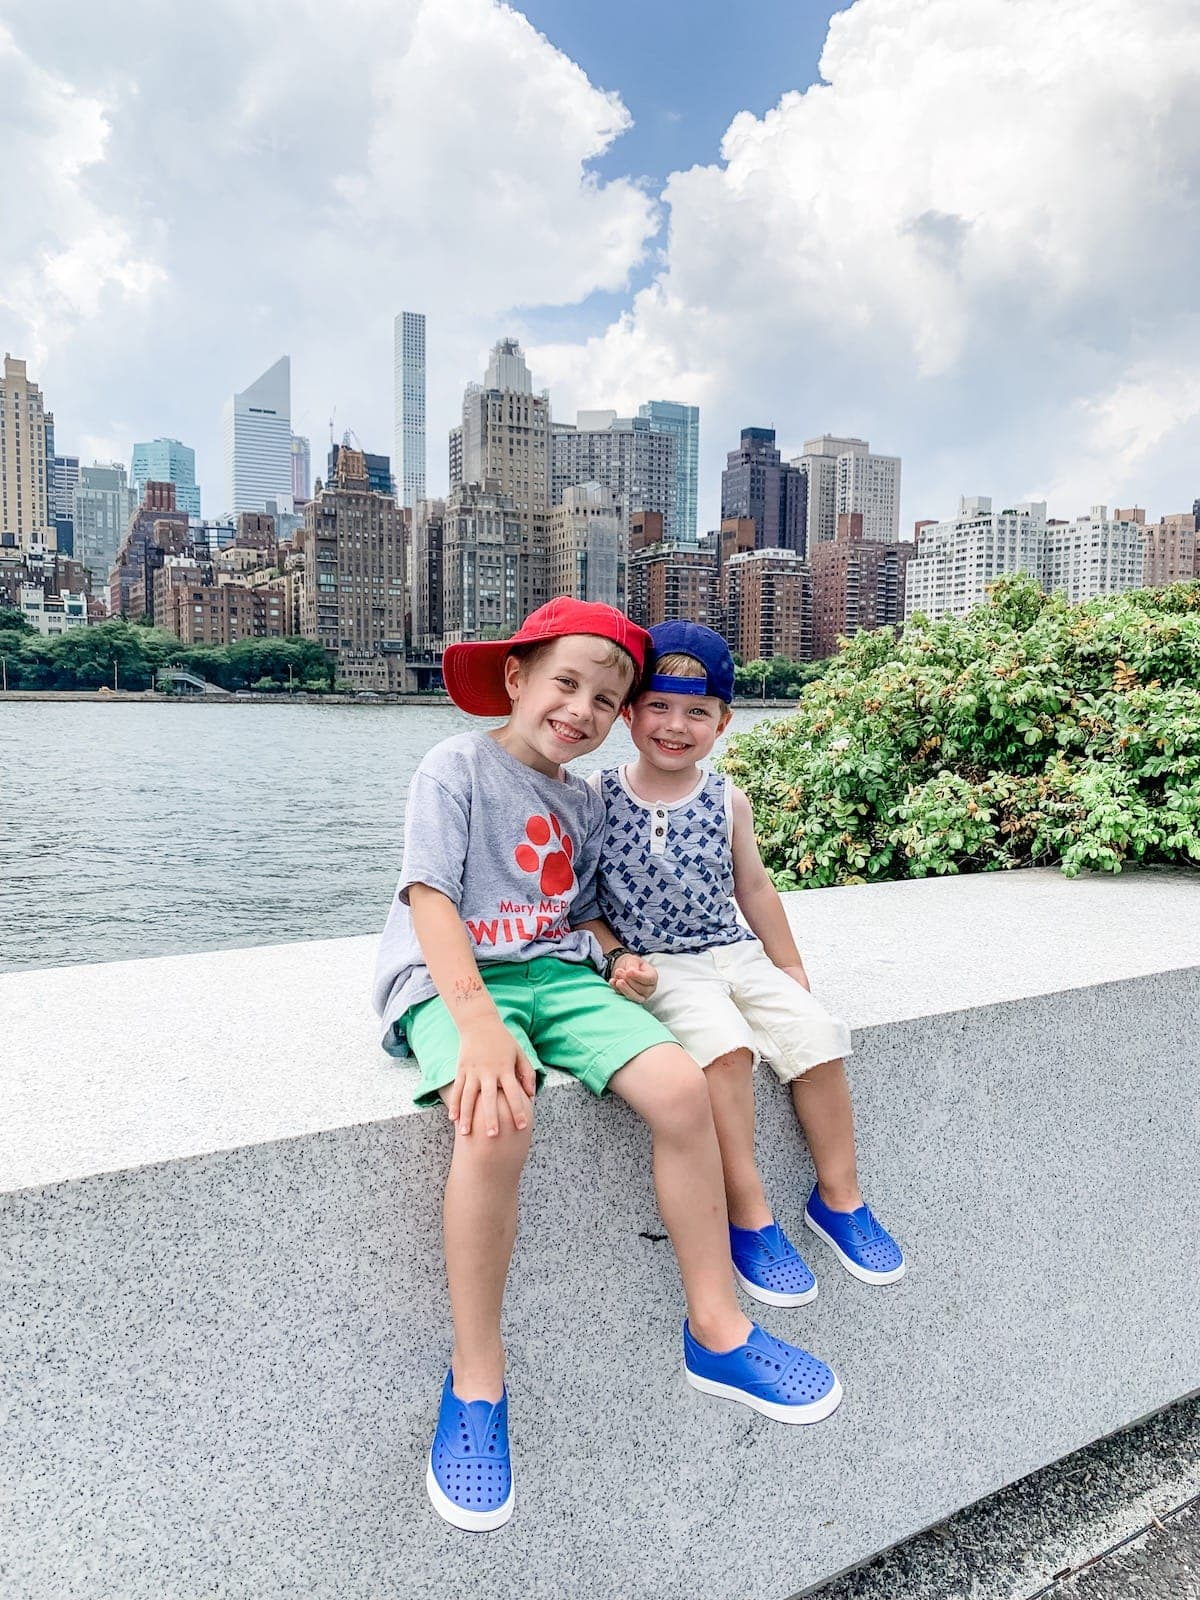 Blake and Eddie sitting with the city skyline behind them